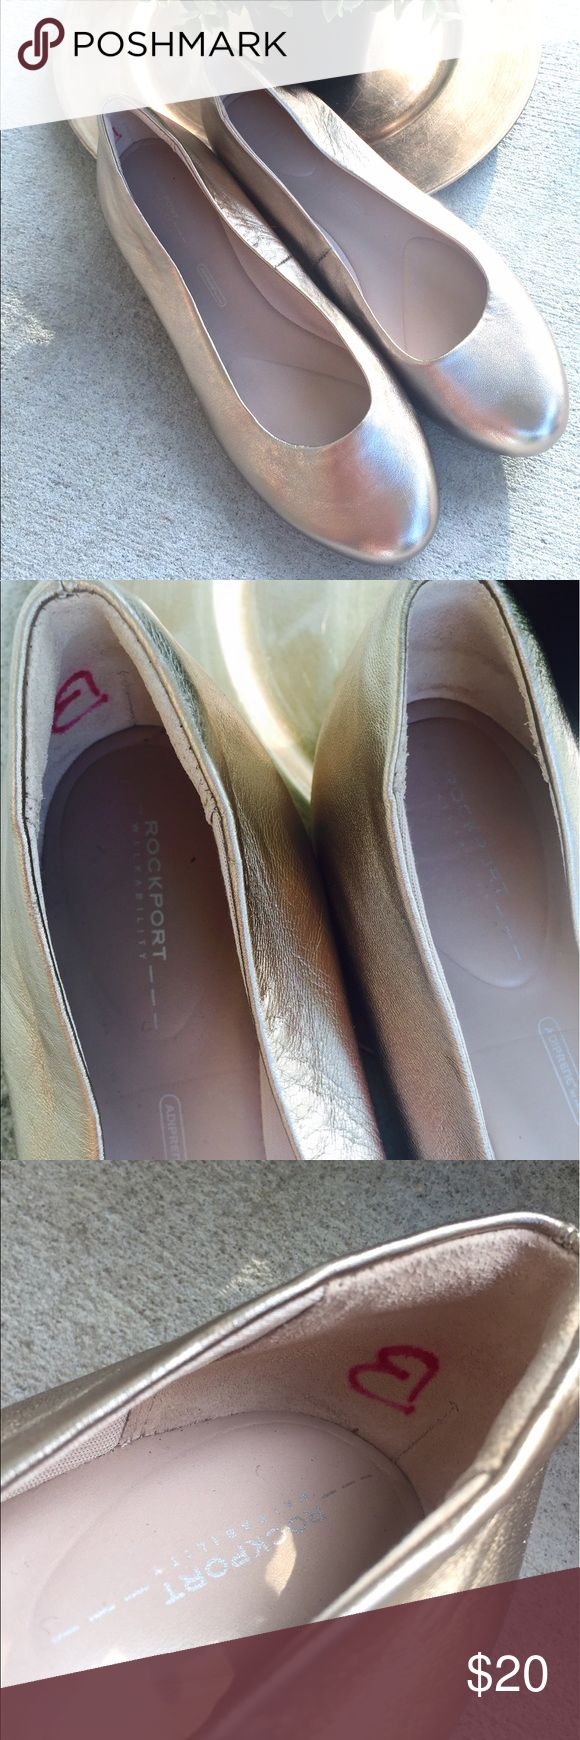 Rockport Walkability Gold Ballet Flats Rockport Walkability Gold Metallic Leather Ballet Flats  Womens 7 M Slip On Shoes Preowned good used condition. Small marker mark on inside of right shoe, see pictures. Rockport Shoes Flats & Loafers